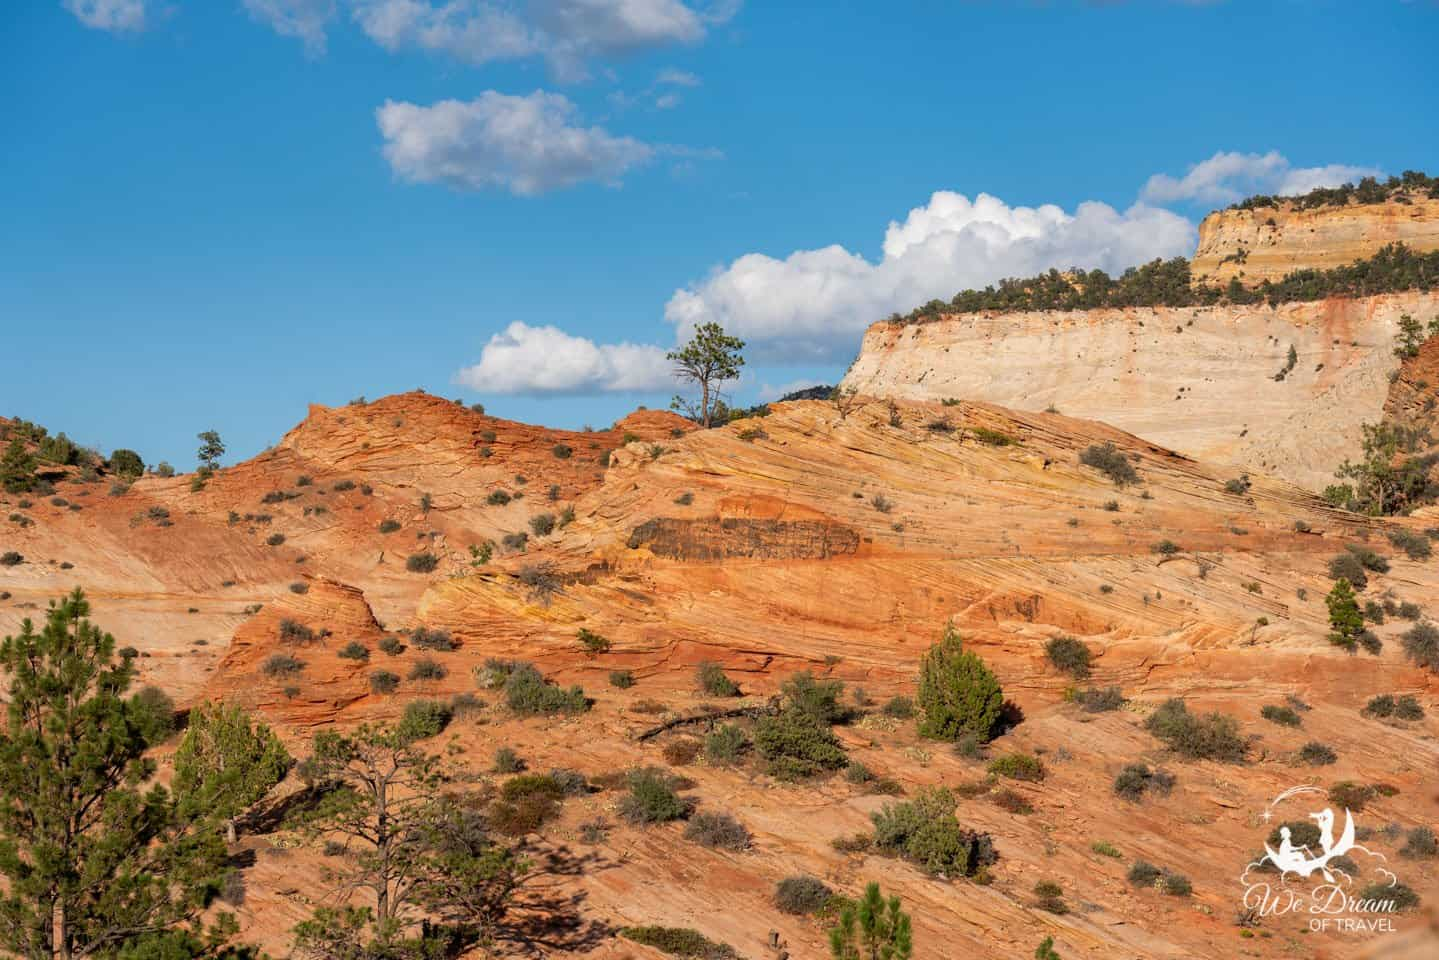 The orange-rock landscapes of the American Southwest are a treasure to behold.